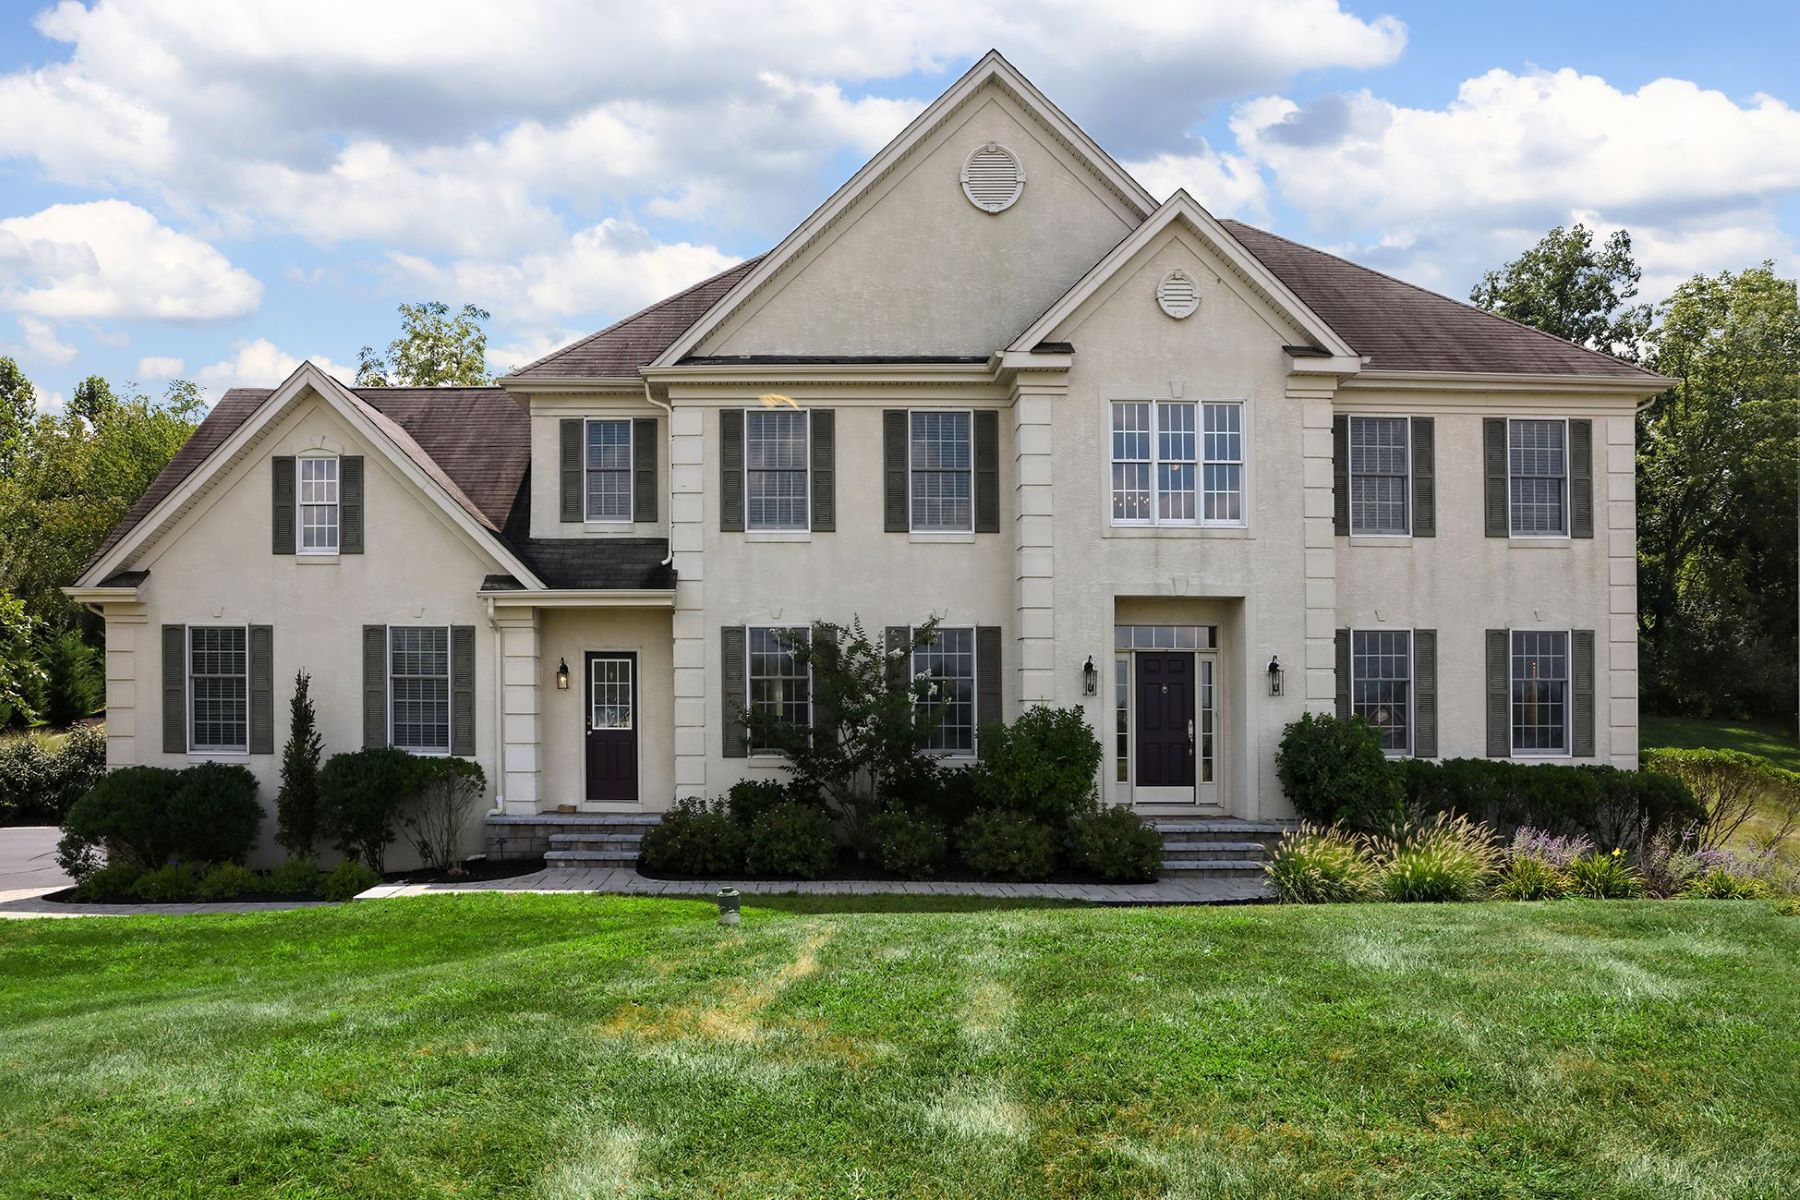 Single Family Homes for Sale at Stunning Offering at the Hills at Hunterdon 25 Rose Run Lambertville, New Jersey 08530 United States